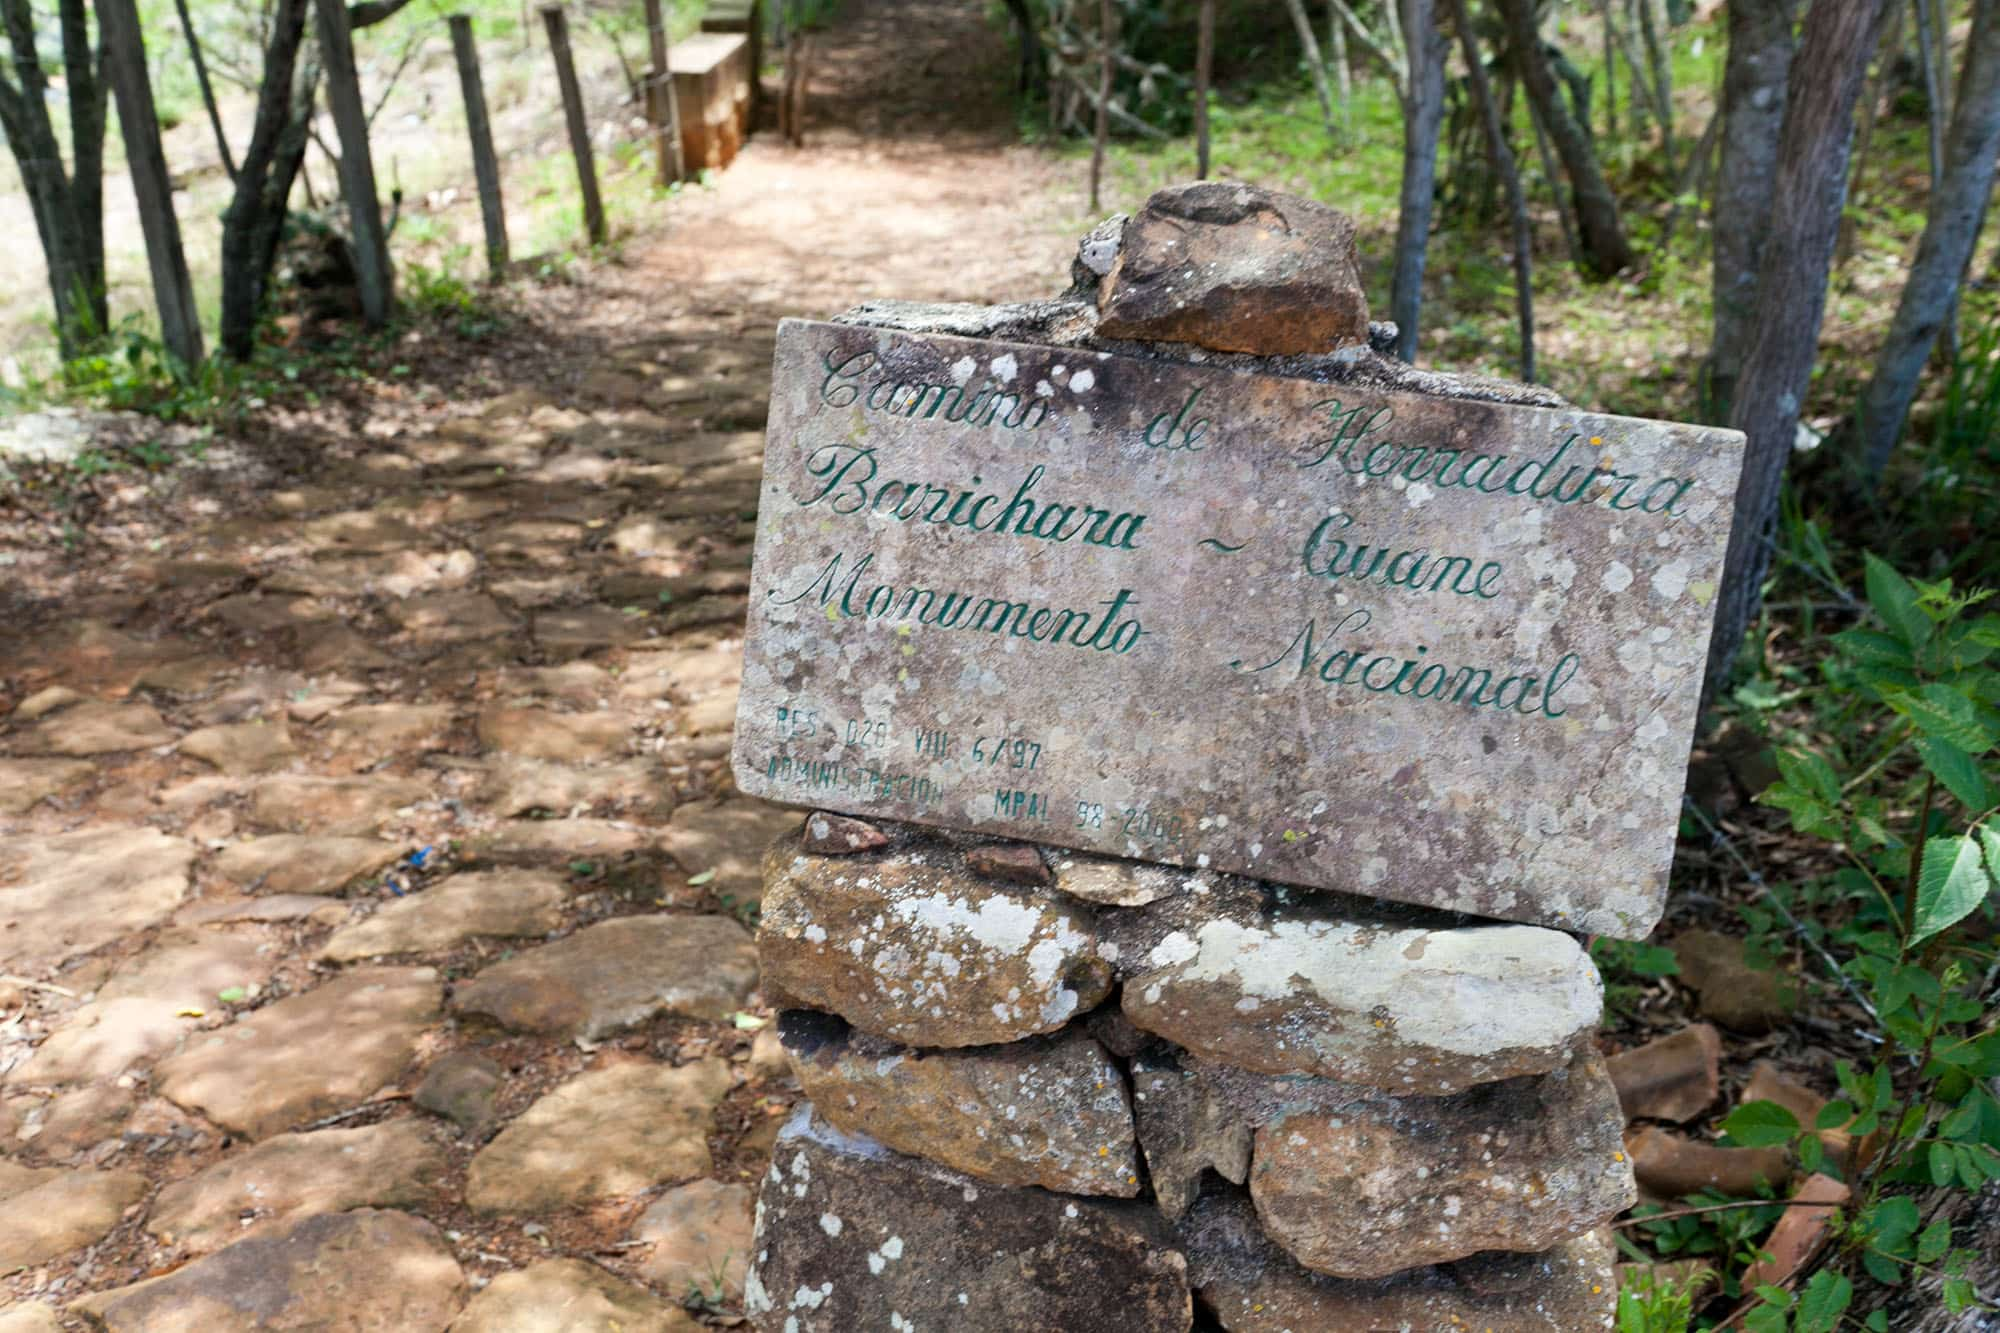 Camino Real - walking from Barichara to Guane, Colombia